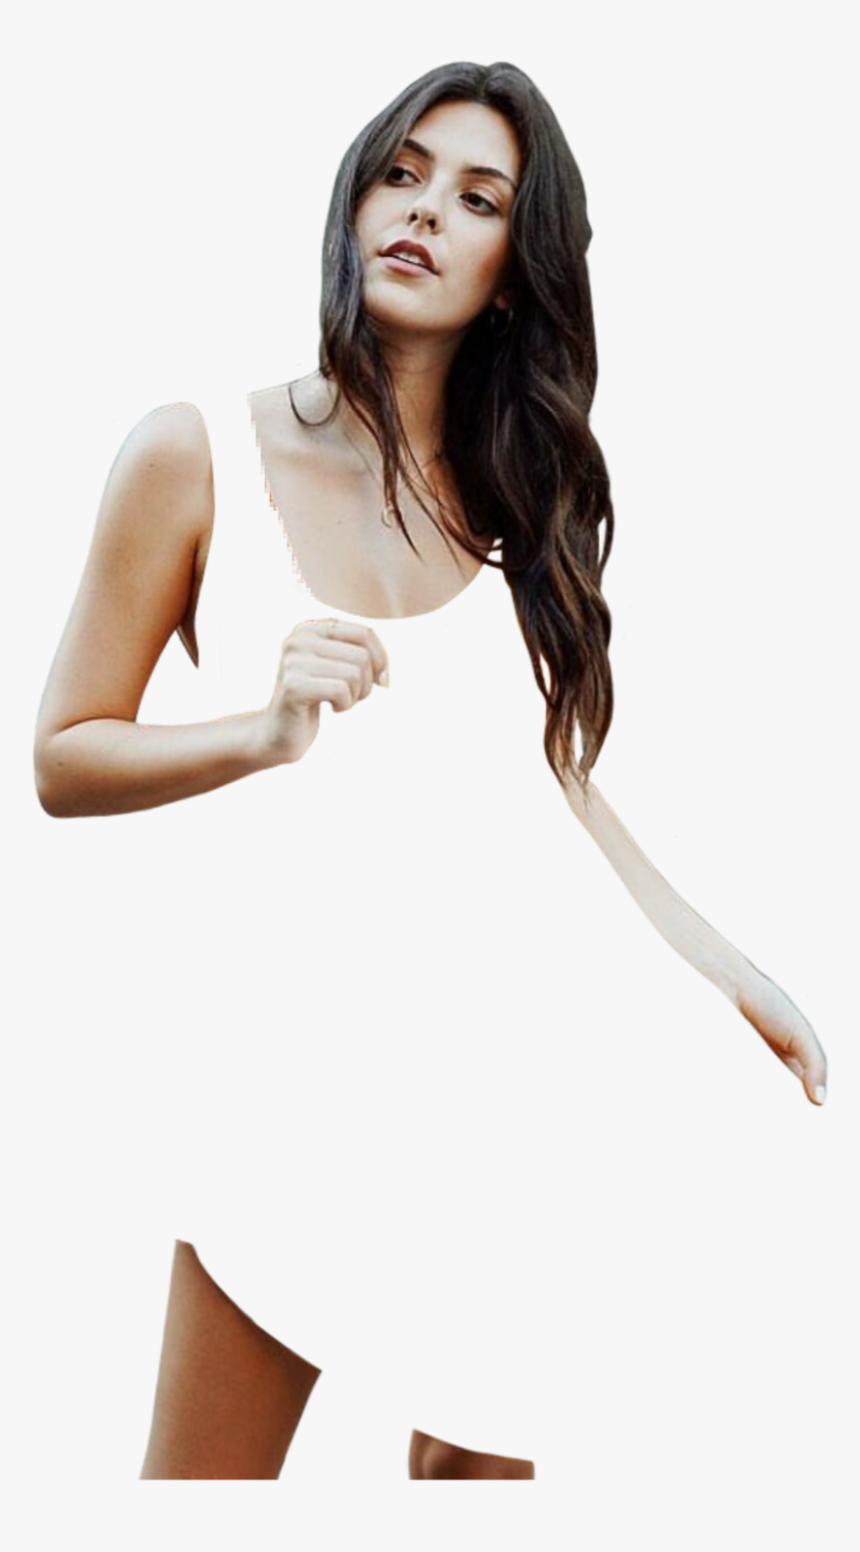 #woman #mujer # Modelo #drees #model - Transparent Png Modelo Png, Png Download, Free Download